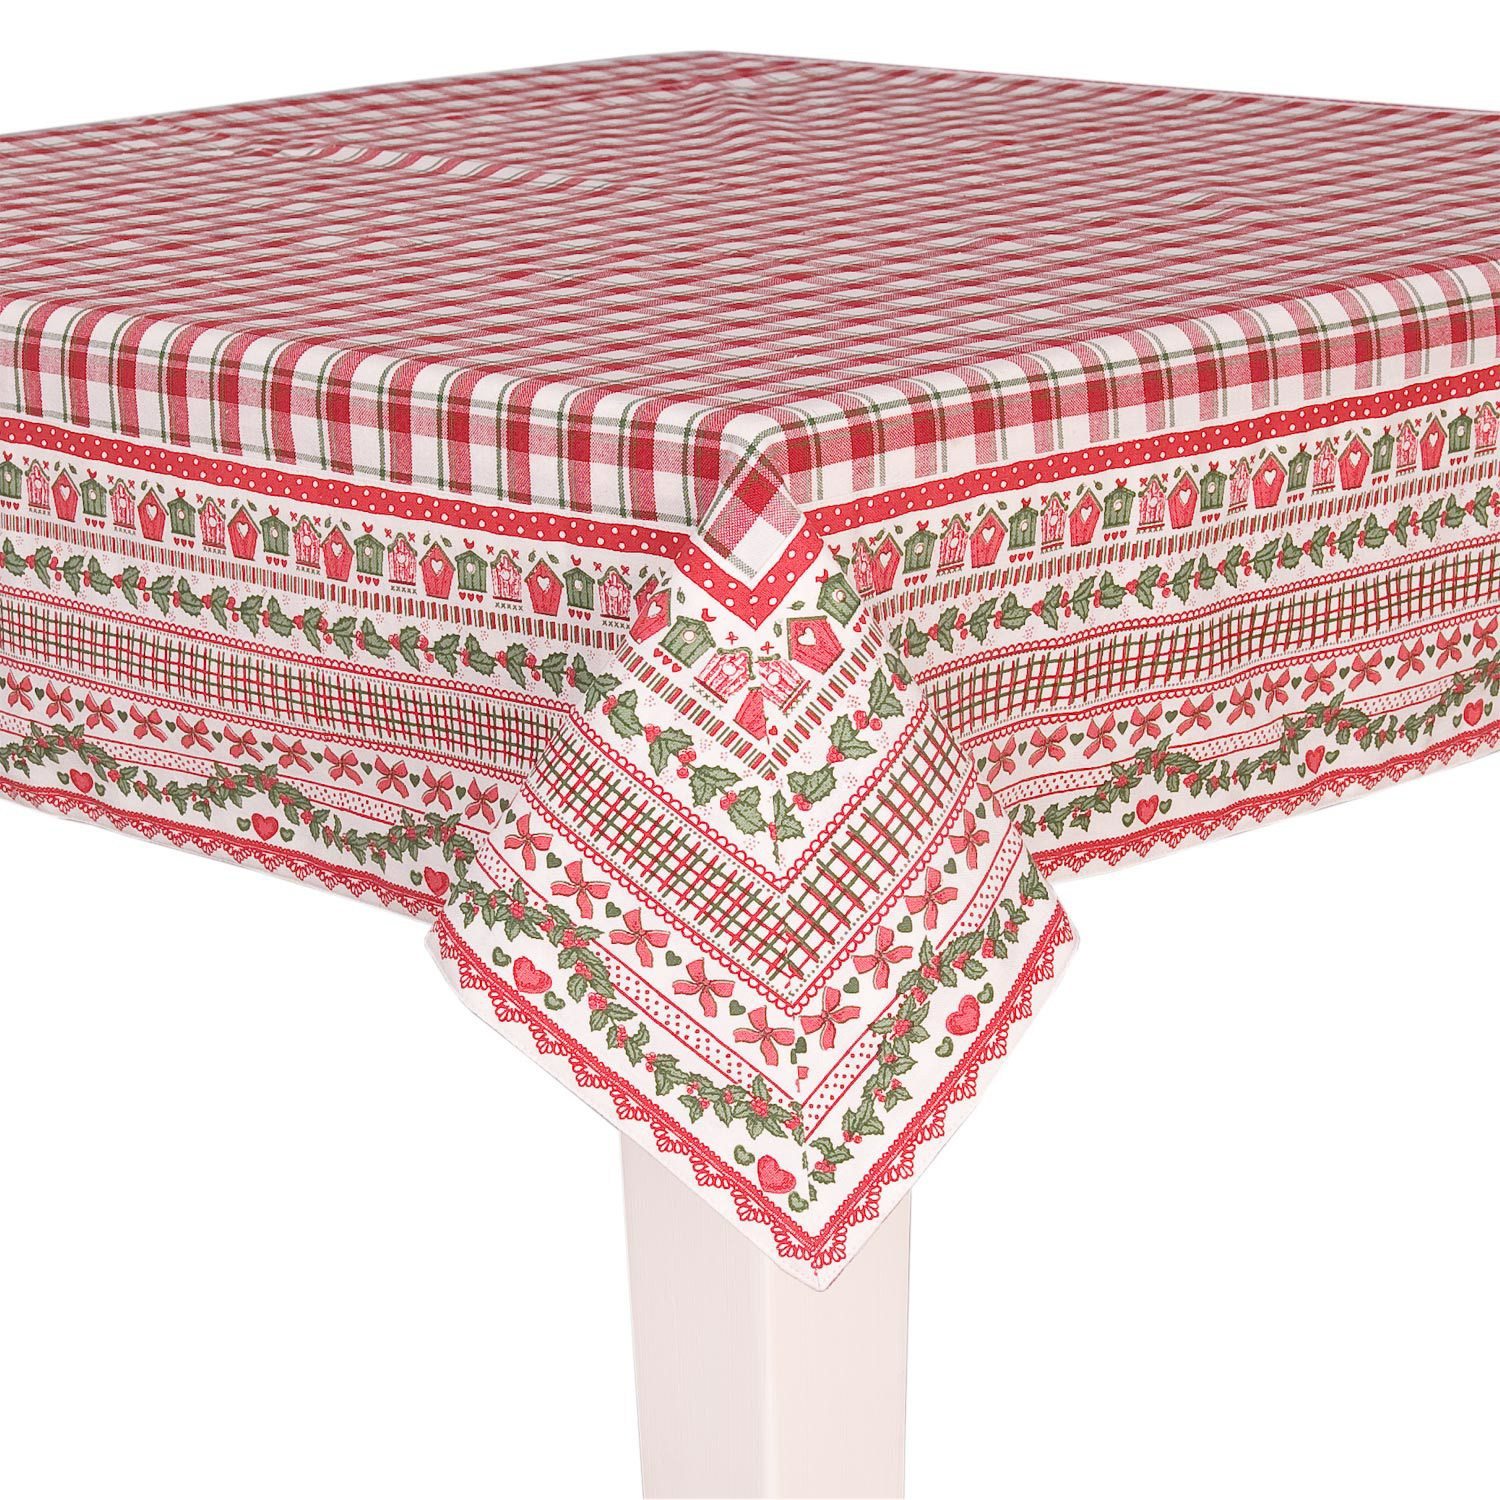 Christmas Tablecloth  Available in two sizes:  130 x 180 cm  € 44  150 x 250 cm  € 88